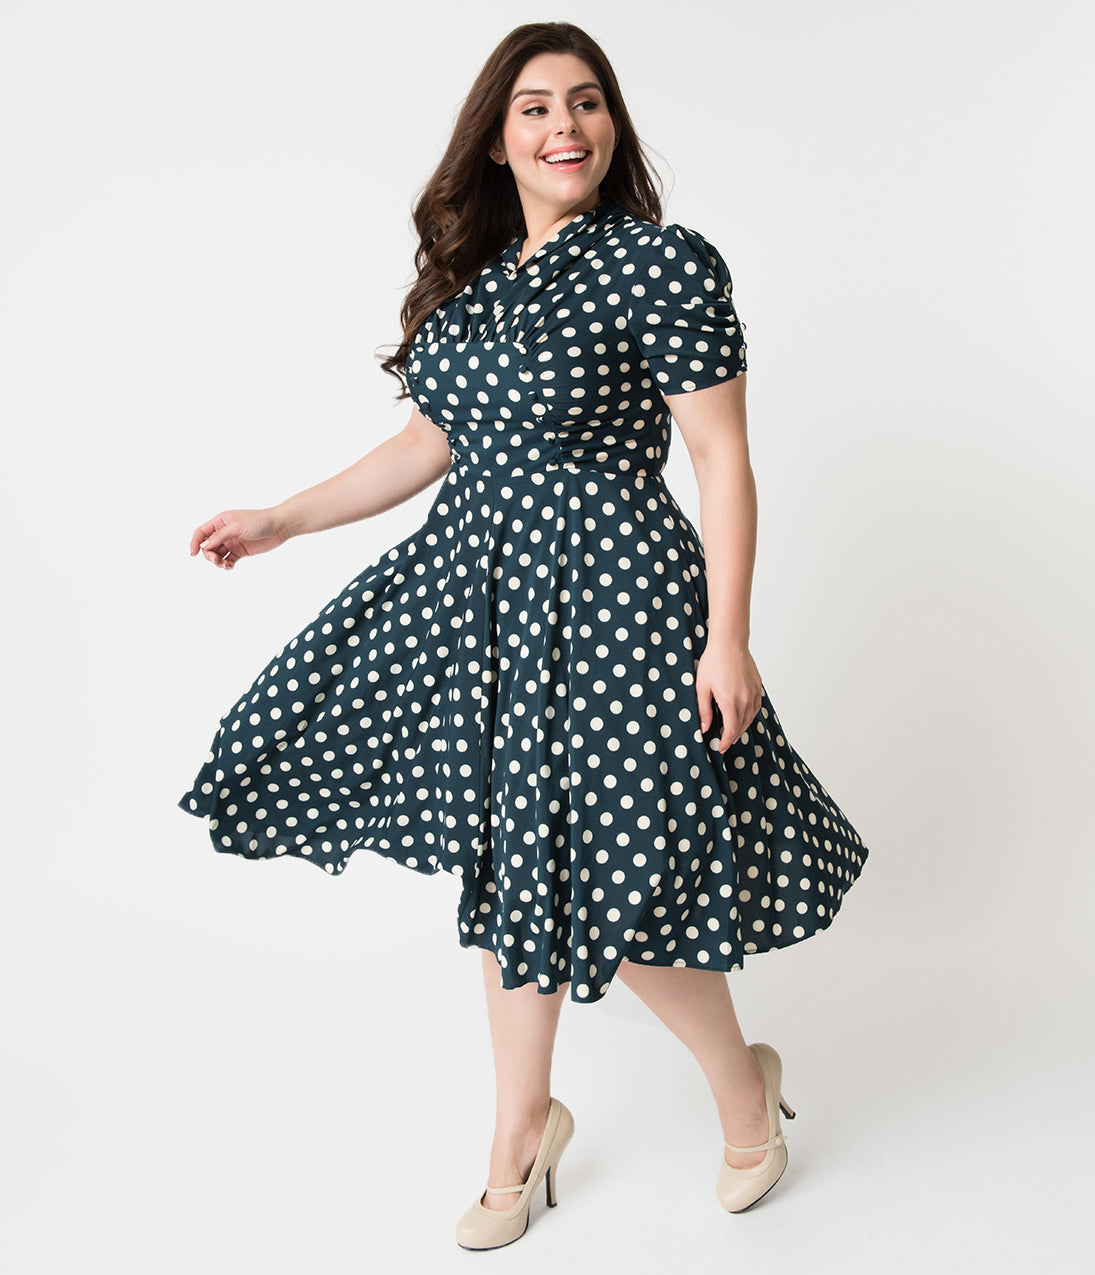 Plus Size 1940s Dress – Fashion dresses